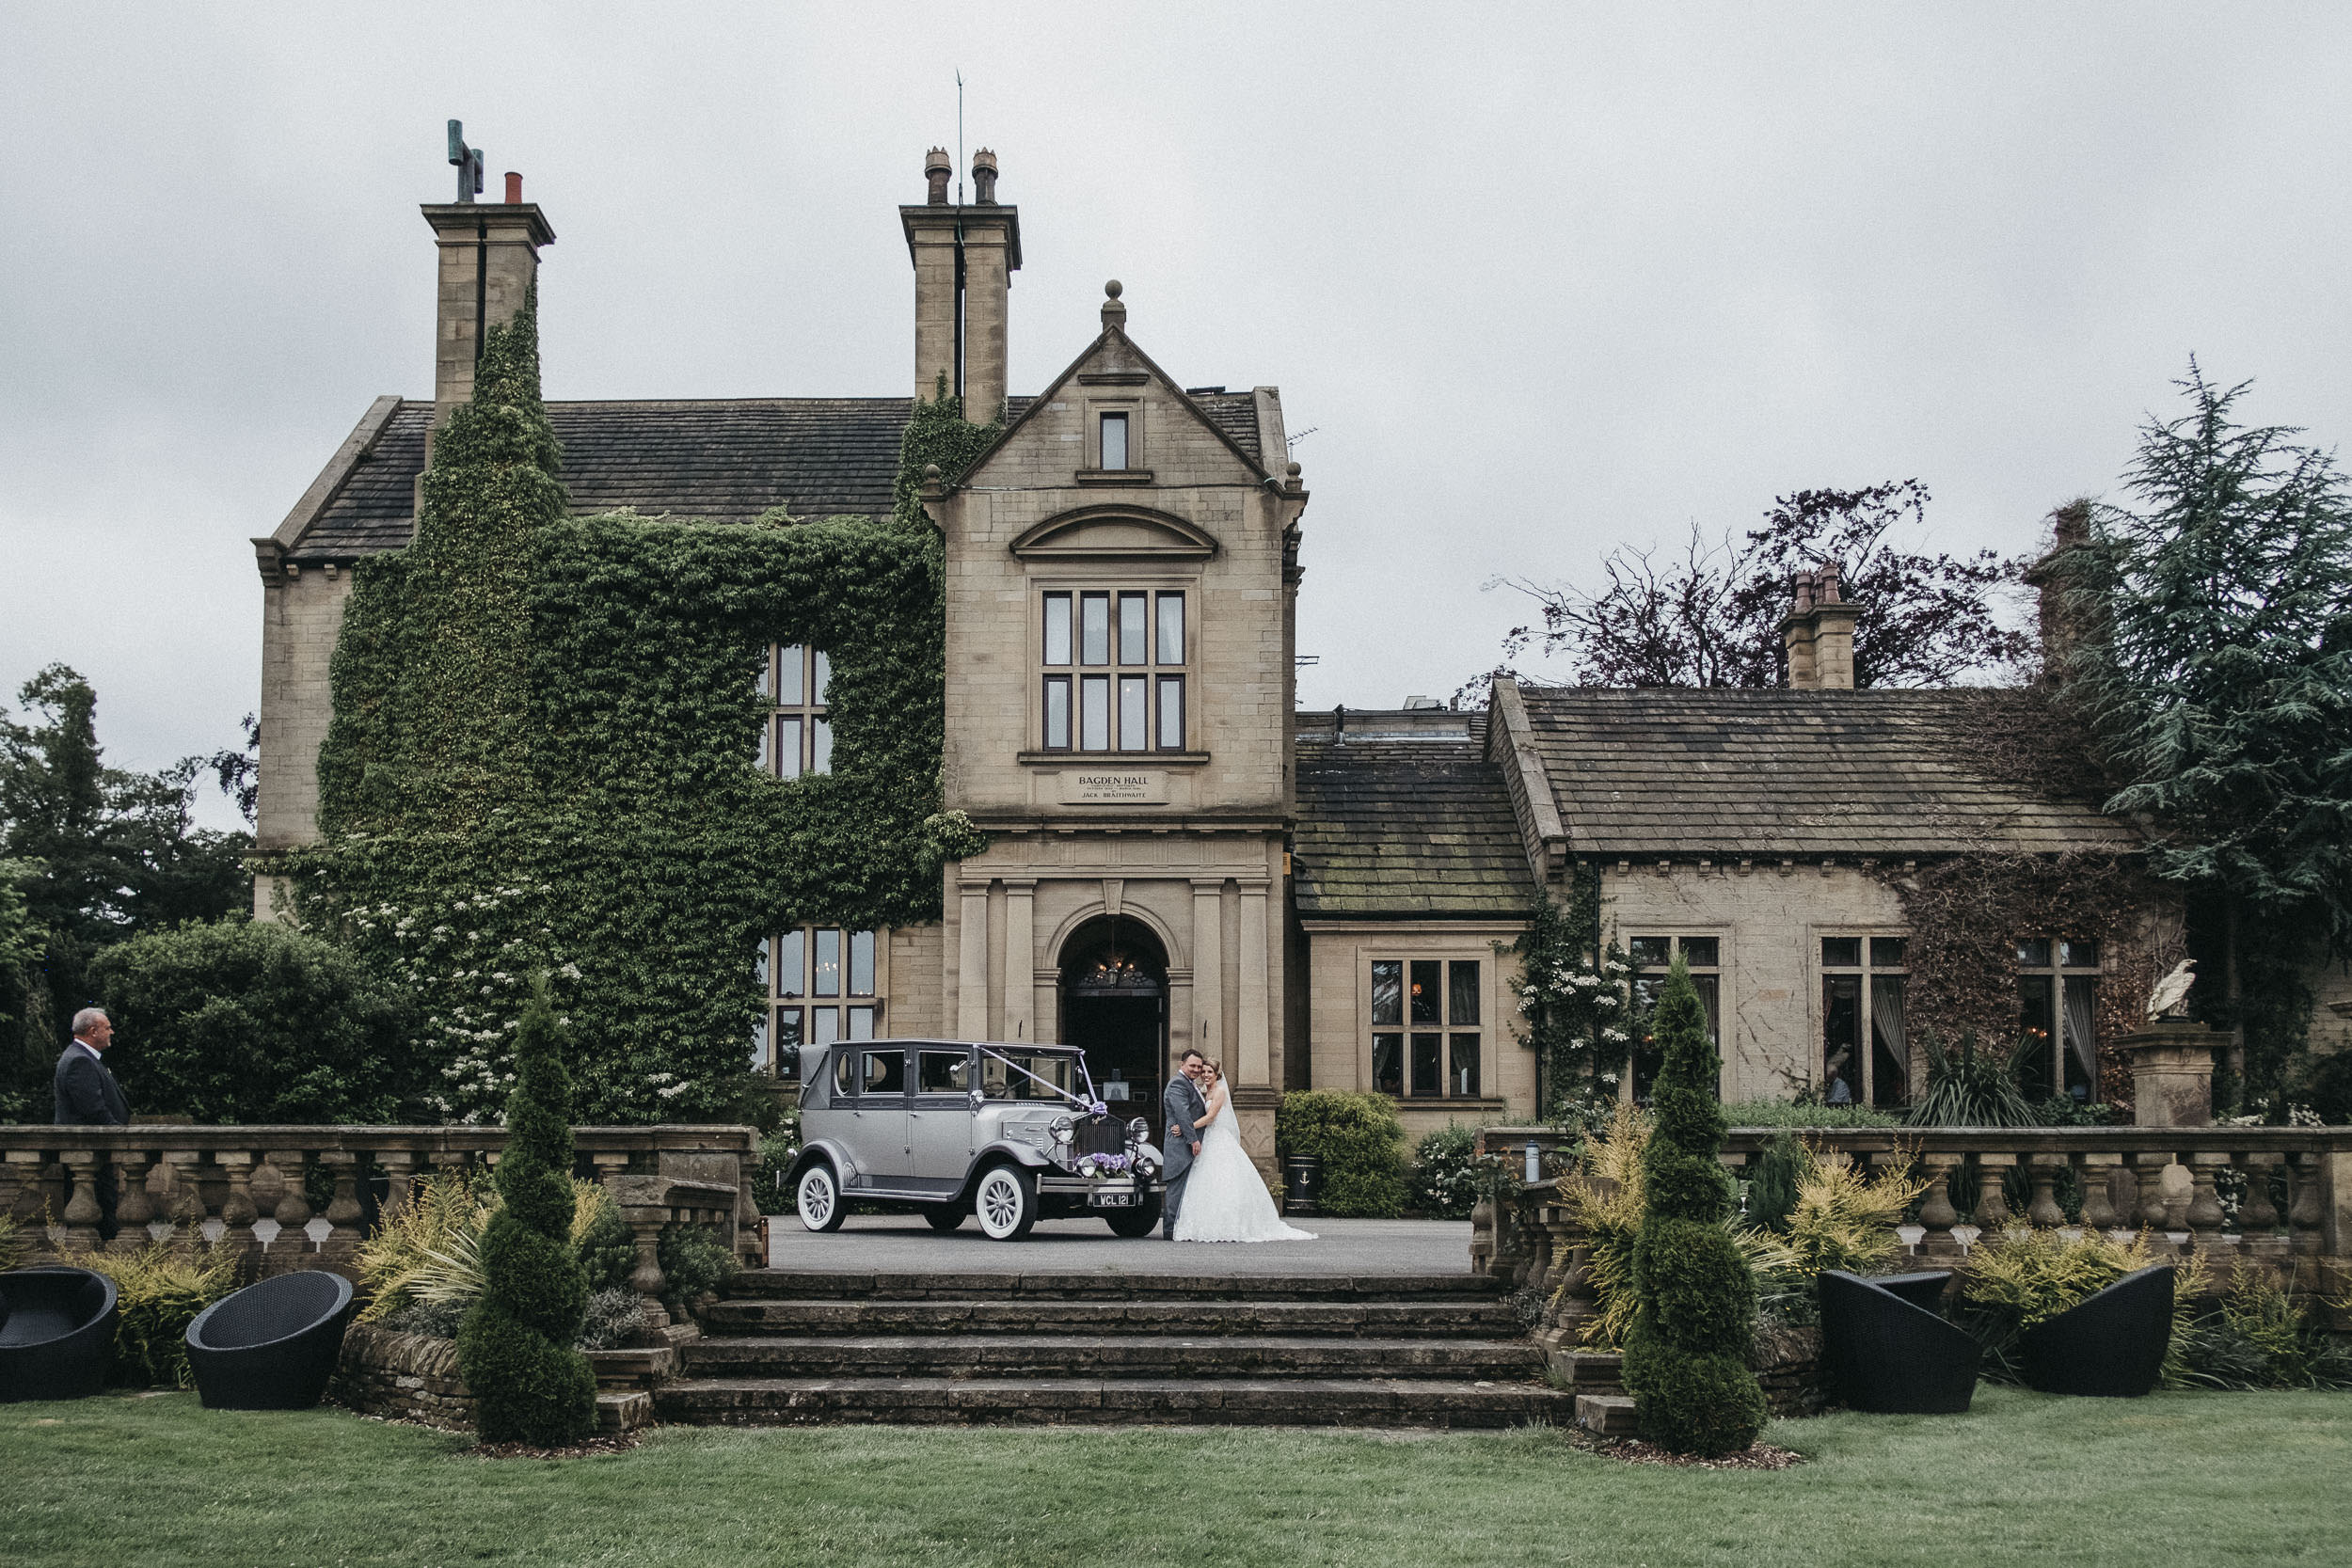 Bride and groom pose with their wedding car with Bagden Hall in the background